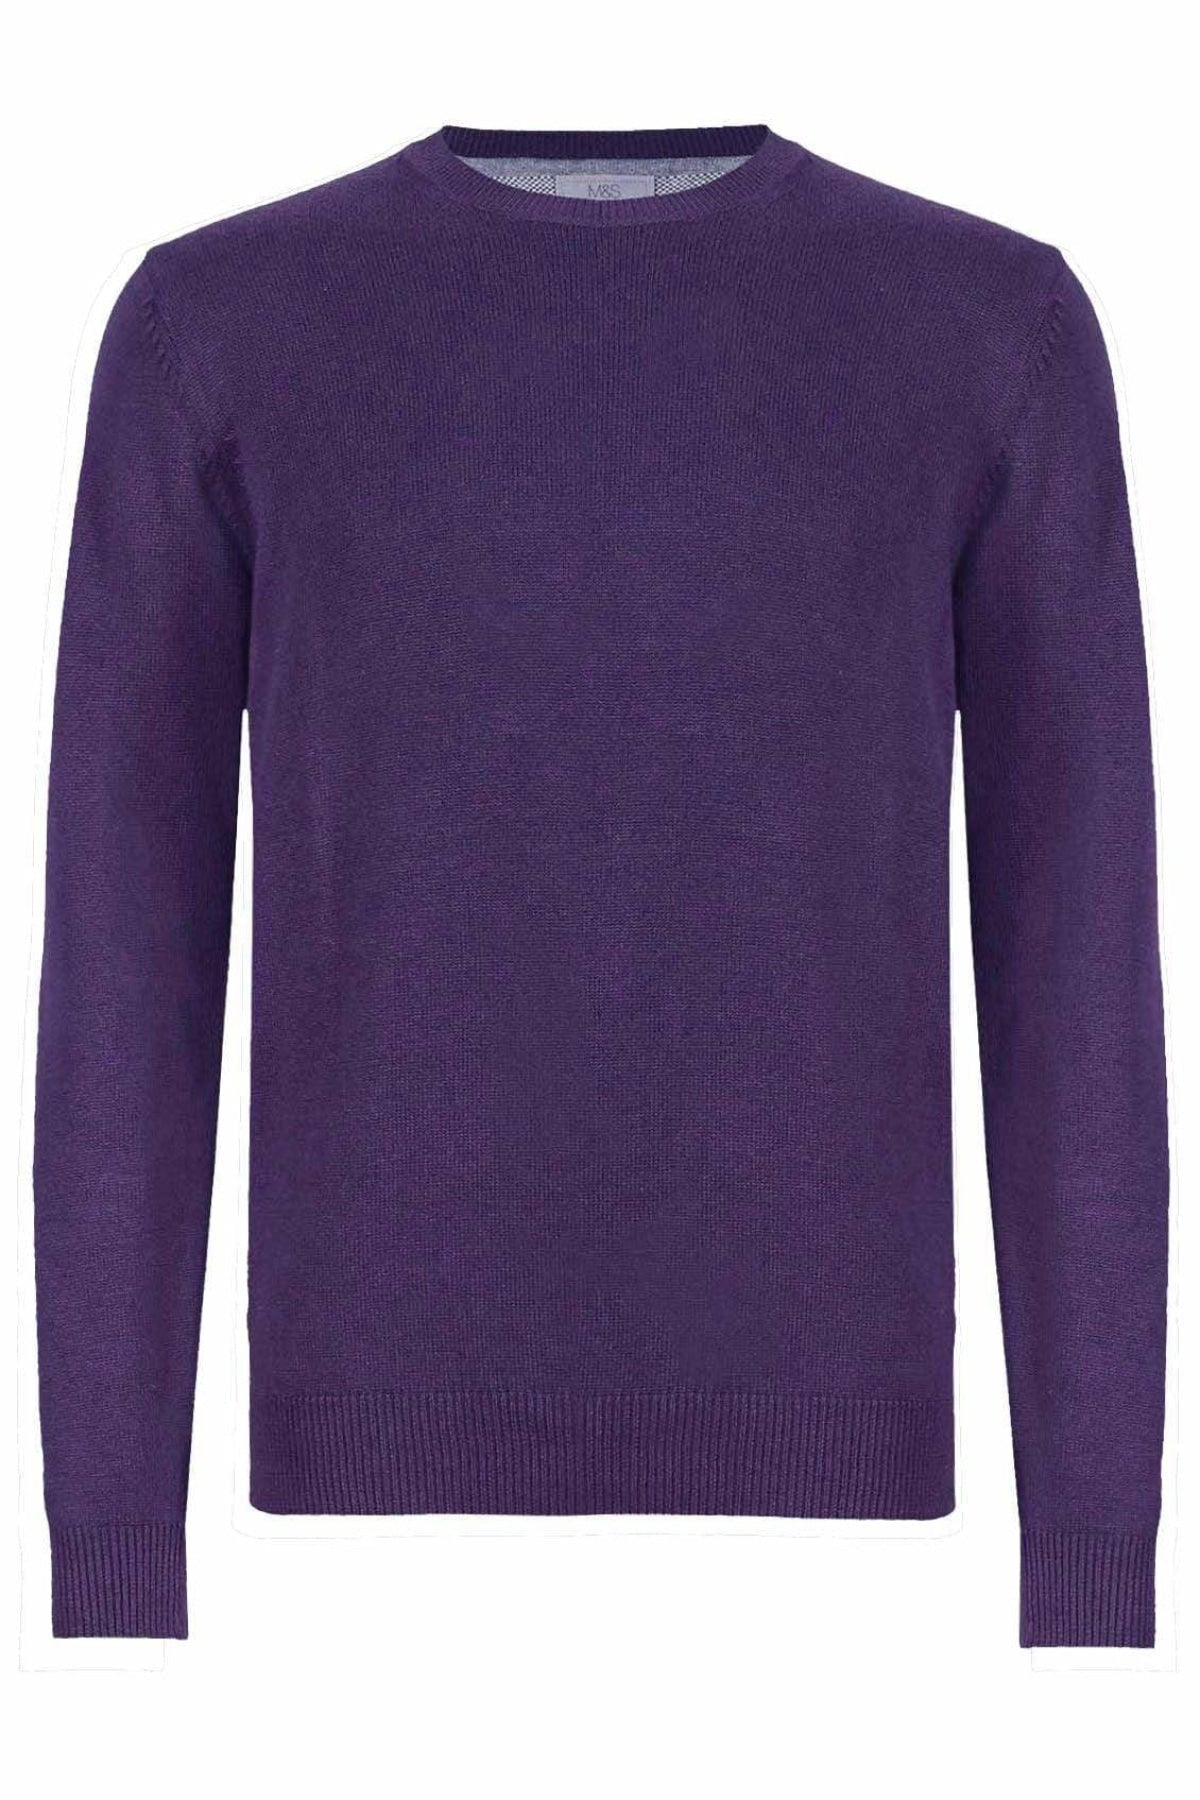 Marks & Spencer Crew Neck Pure Cotton Jumper | S / Purple Secret Label